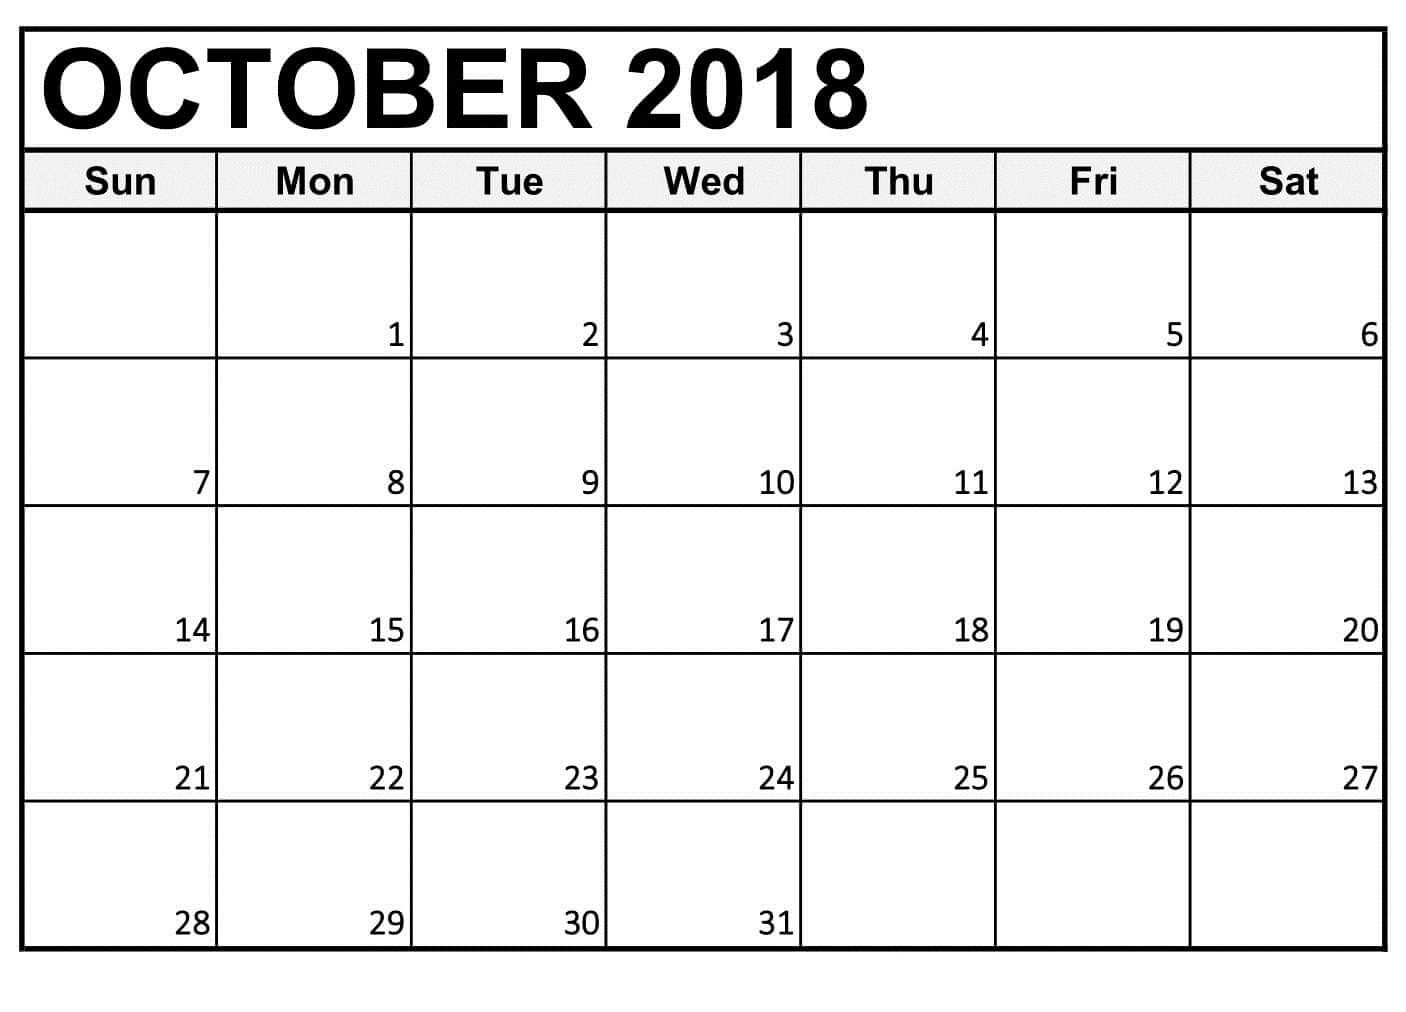 Free Printable Calendar October 2018 Large Numbers intended for Free Large Number Printable Calendars